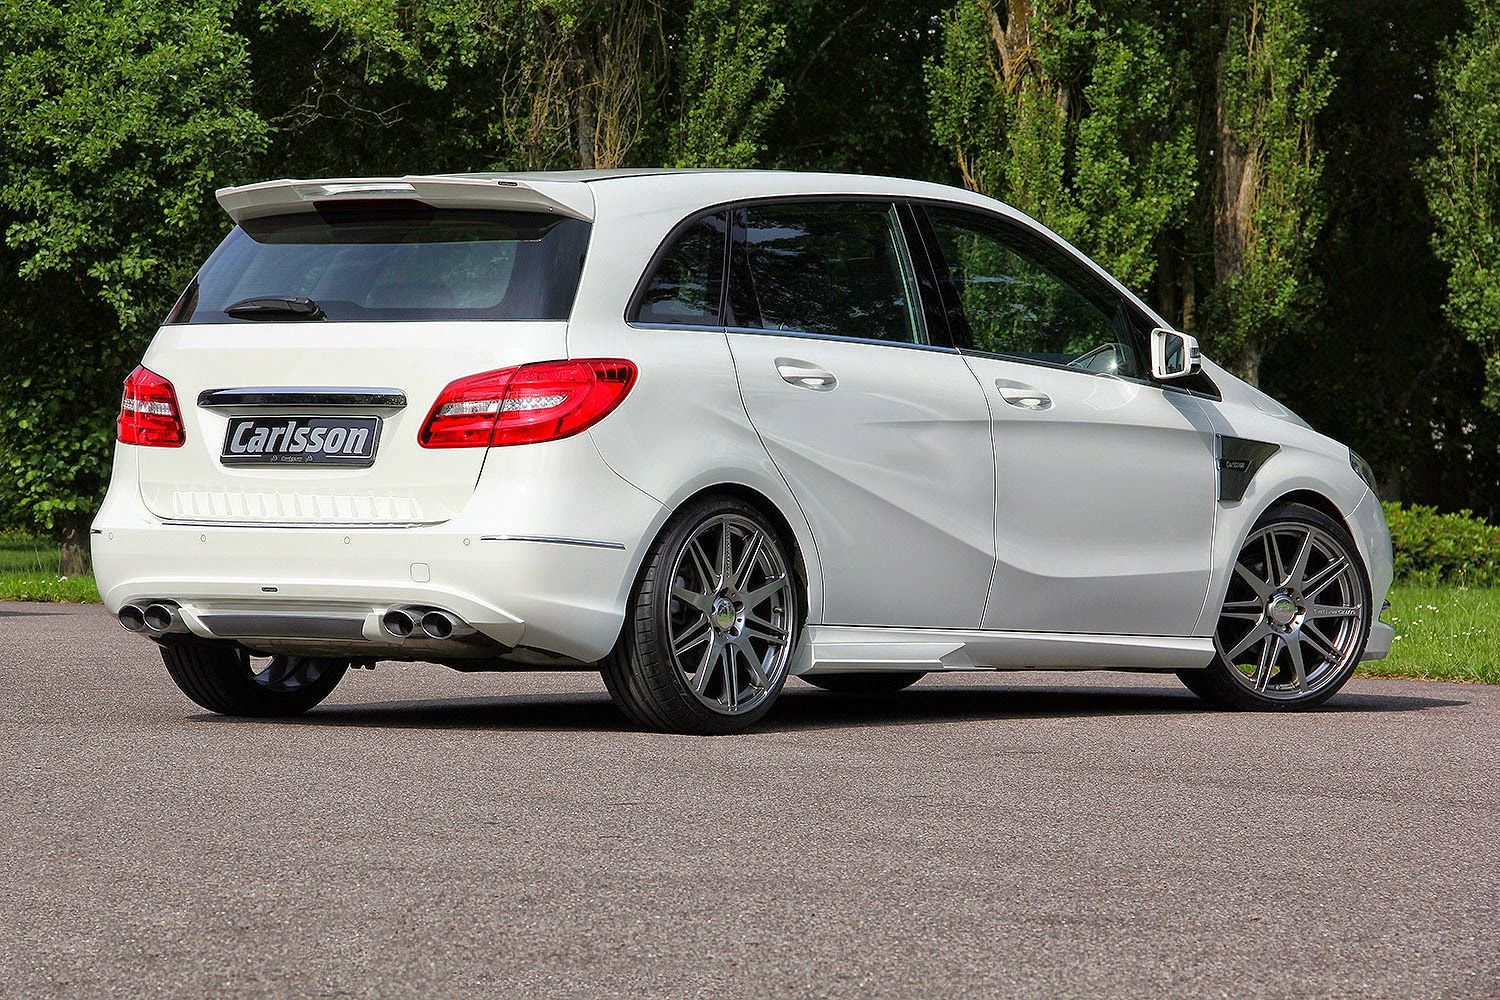 Mercedes Benz B Class W246 By Carlsson Mbhess Mbtuning 改造 クラシック 旅